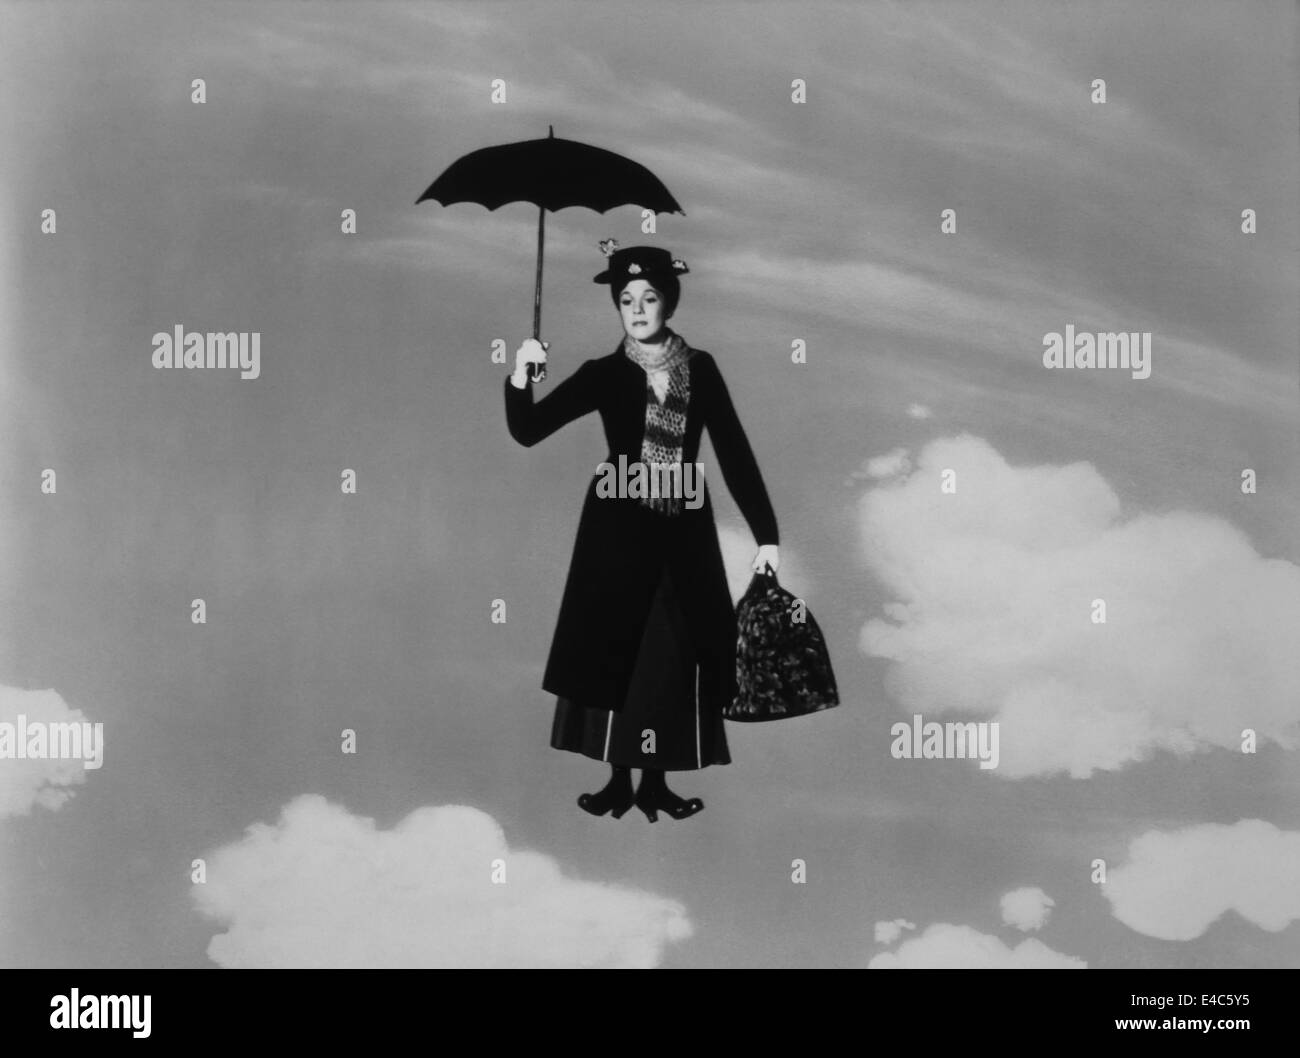 Julie Andrews, on-set of the Film, 'Mary Poppins', 1964 - Stock Image